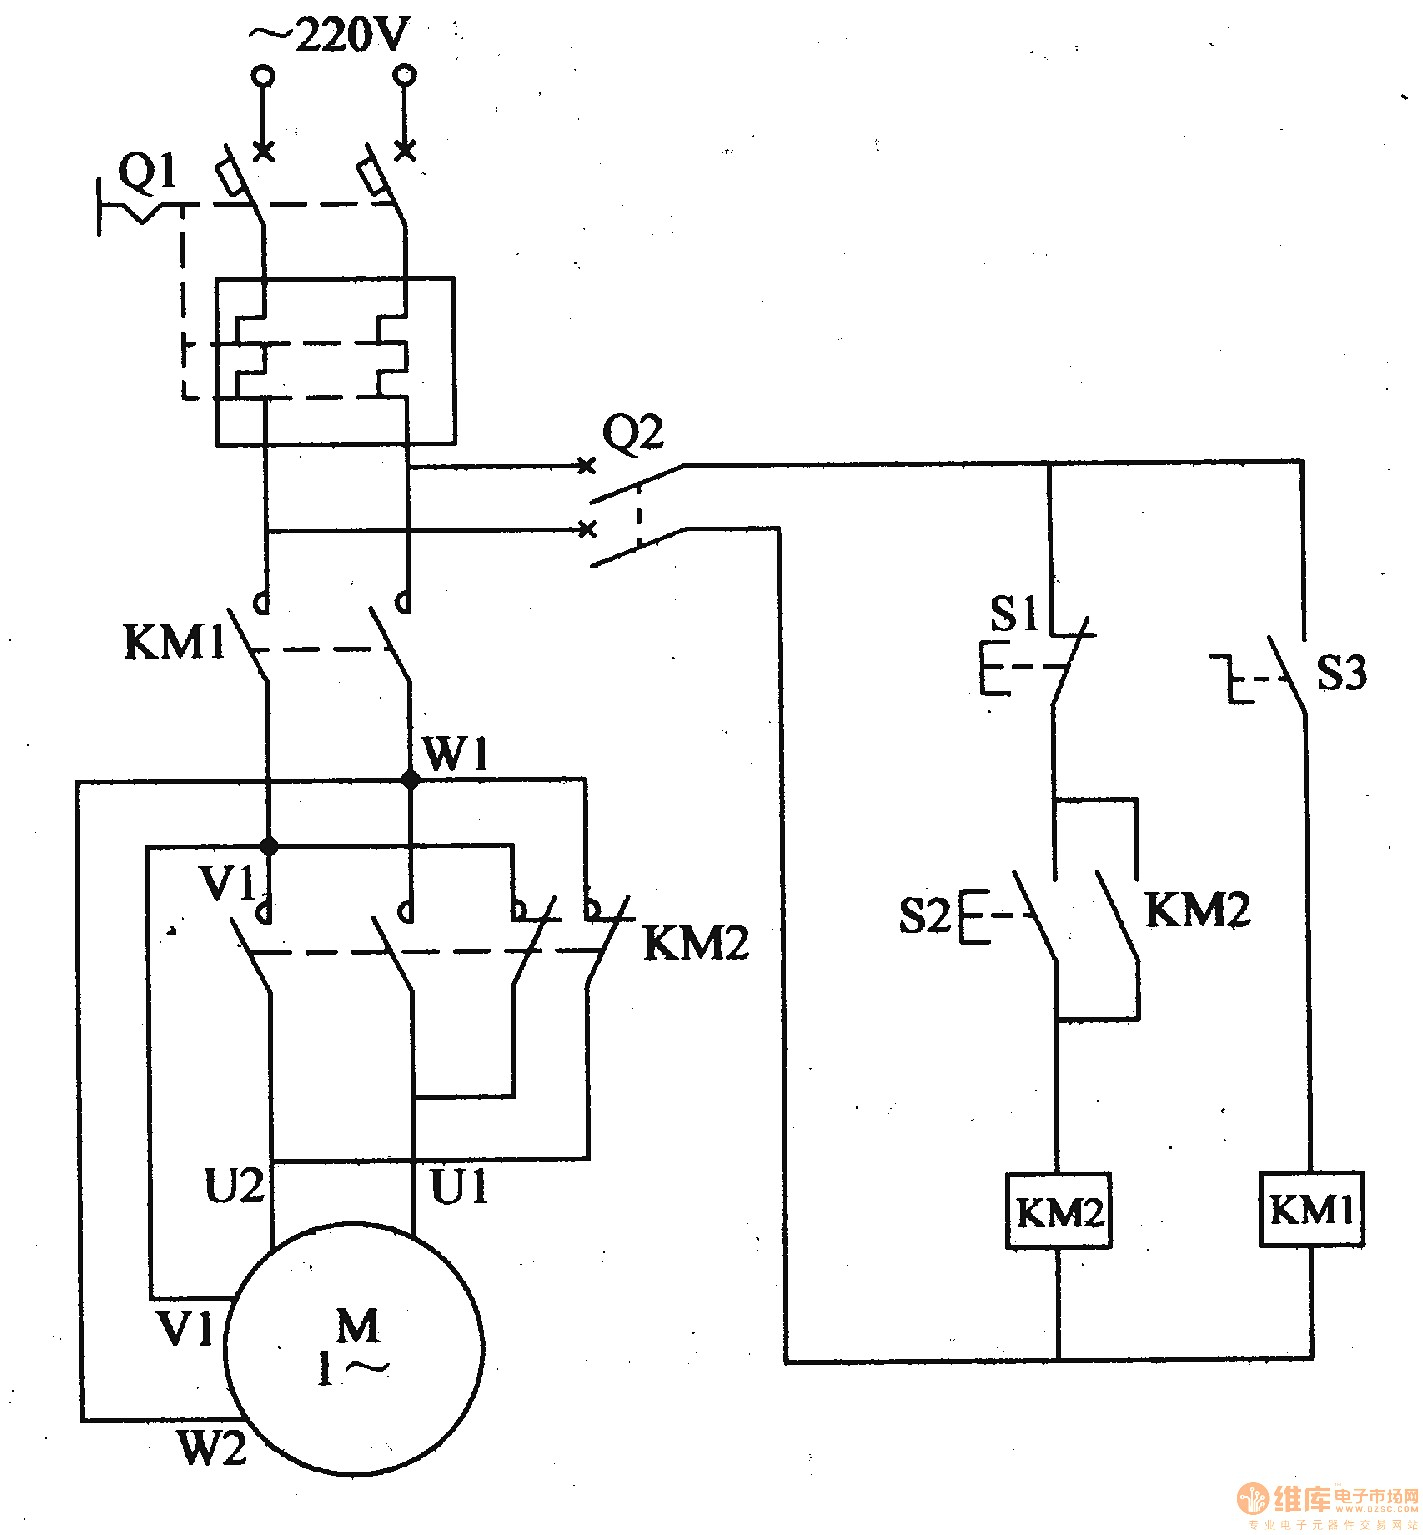 240v Single Phase Wiring Diagram : V motor wiring diagram single phase collection